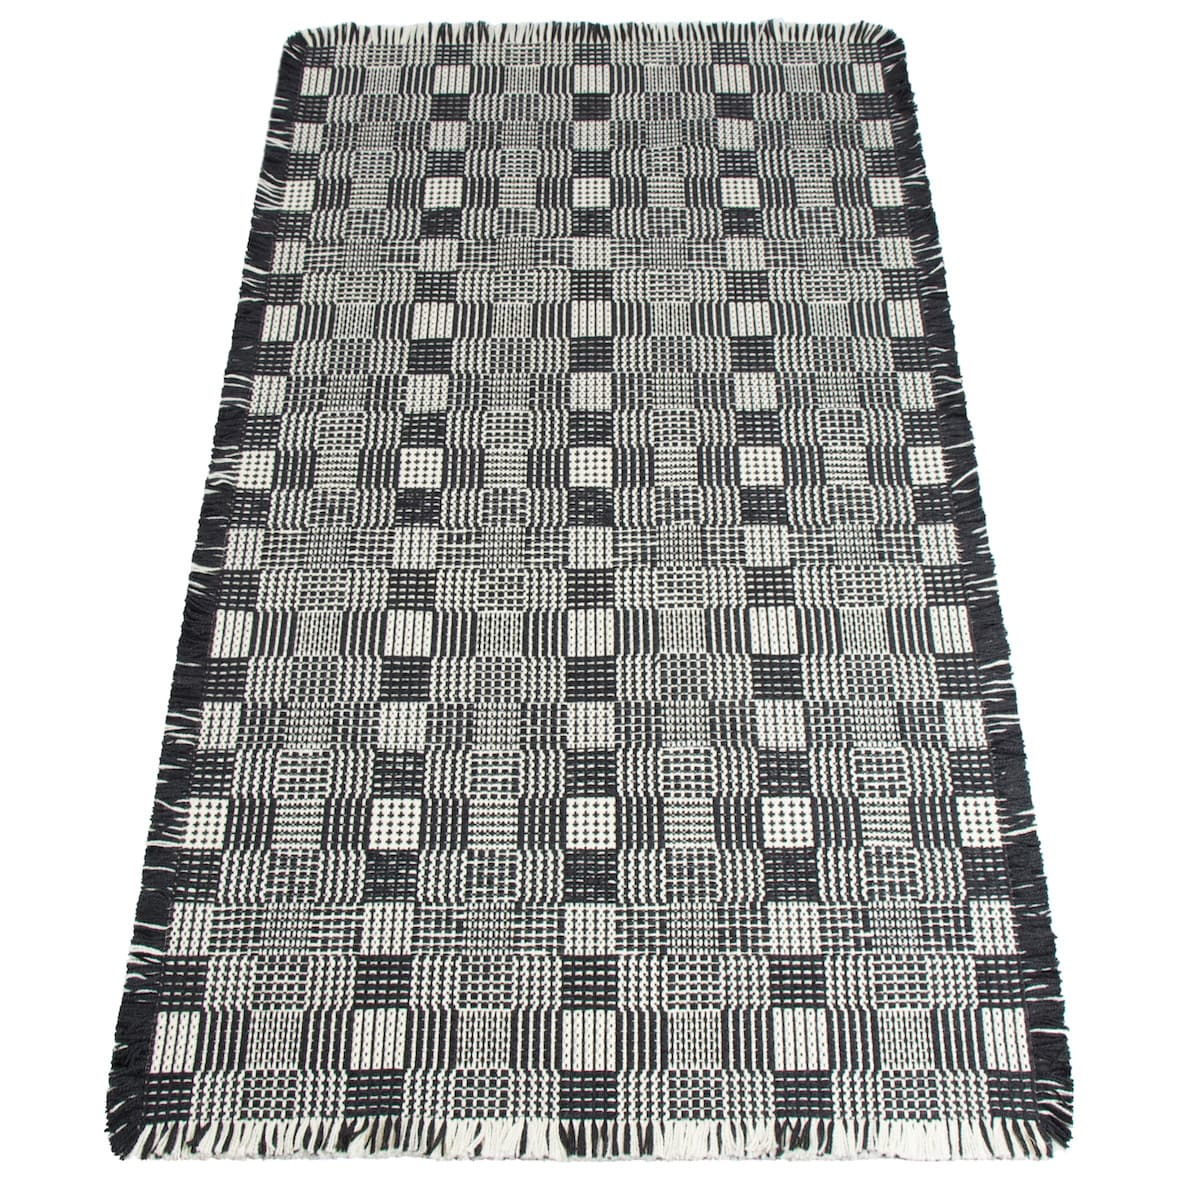 Chequerboard Black Rug